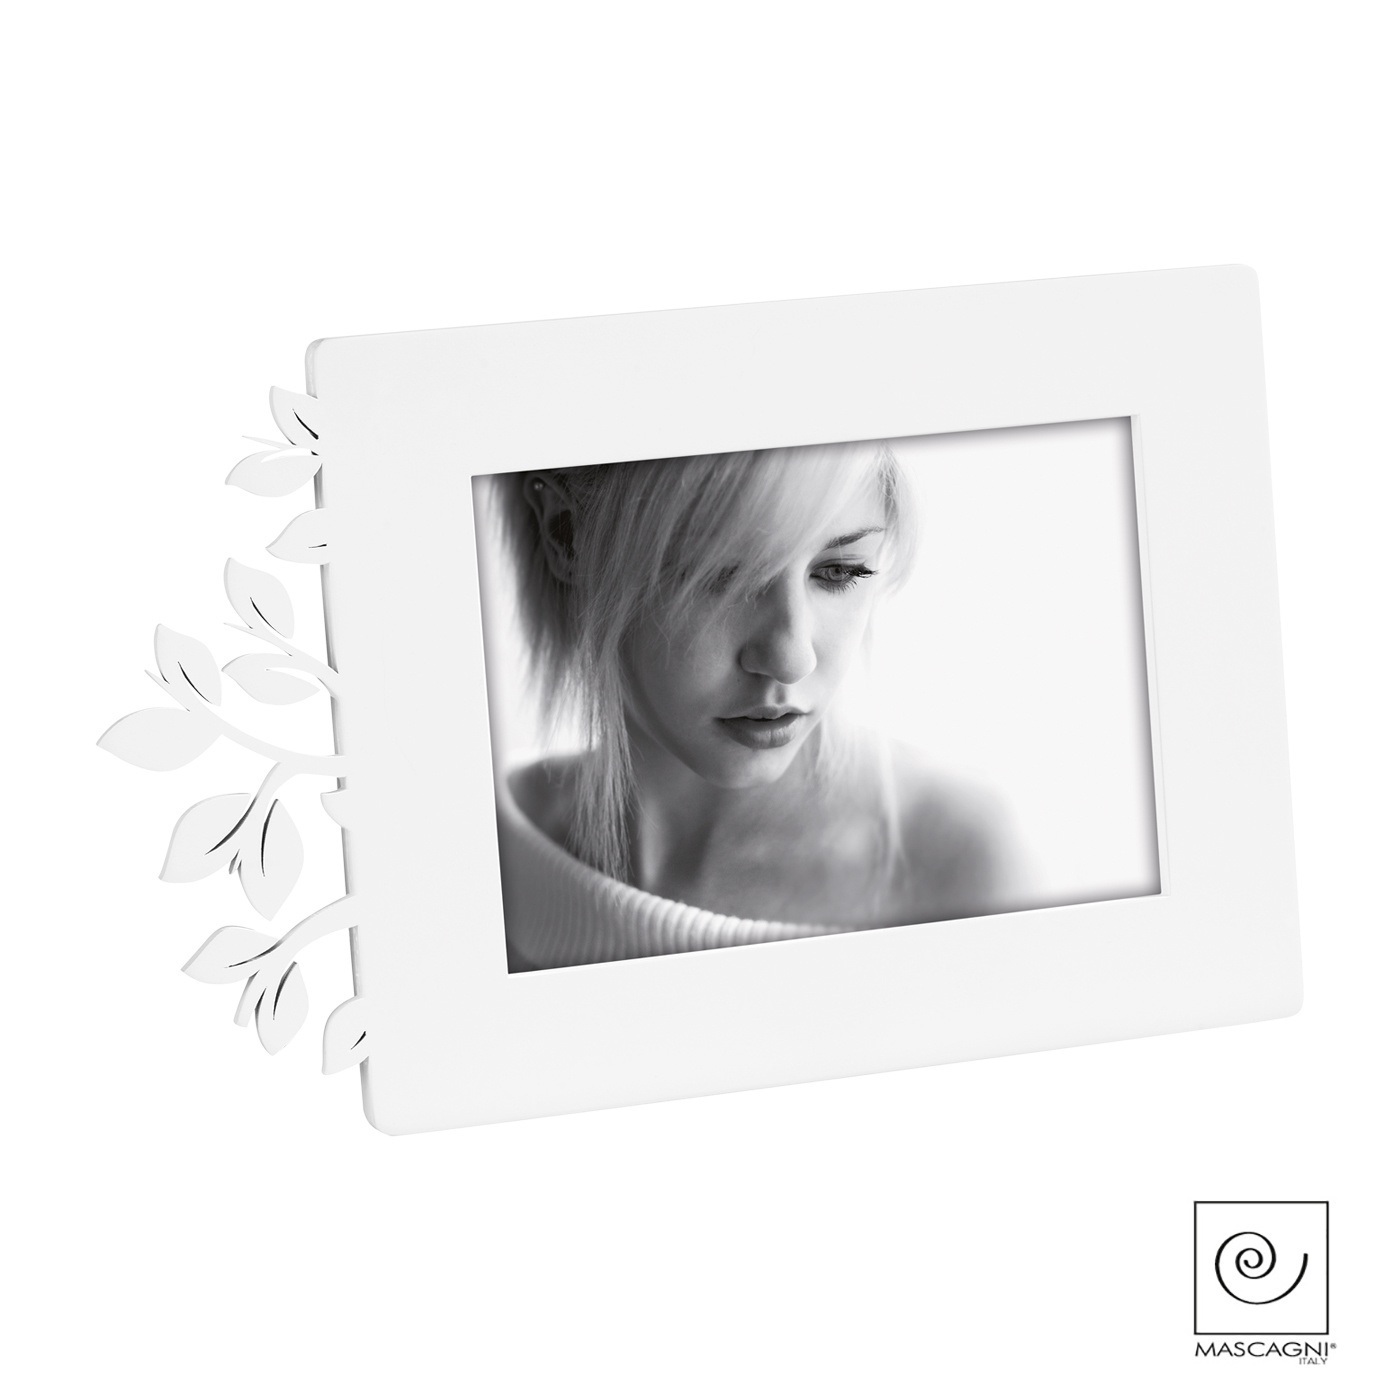 Art Mascagni A1087 PHOTO FRAME 13X18 - COL.WHITE